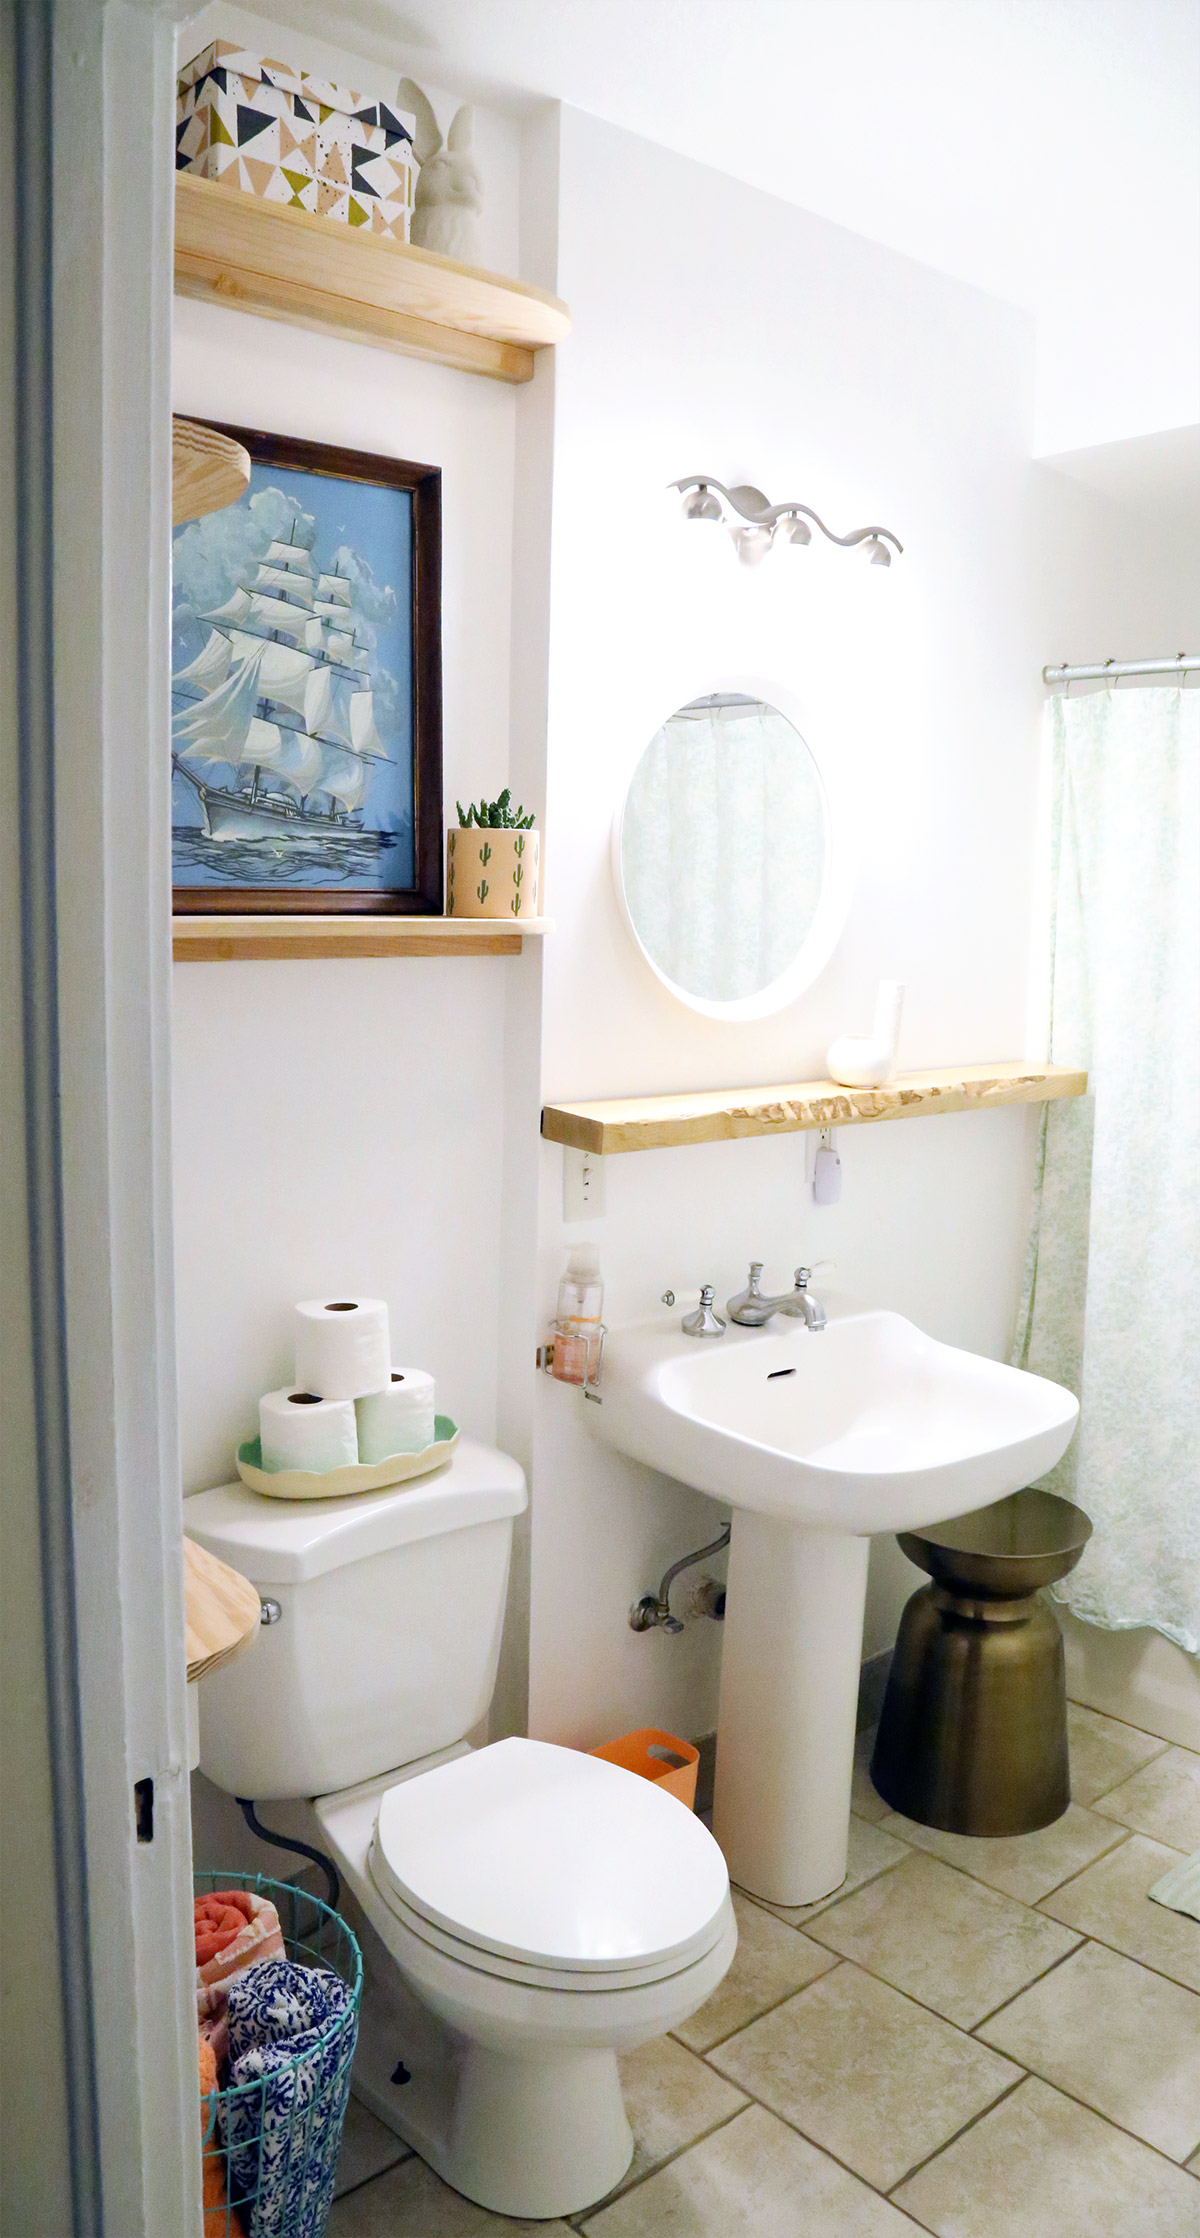 DIY floating shelves in bathroom.